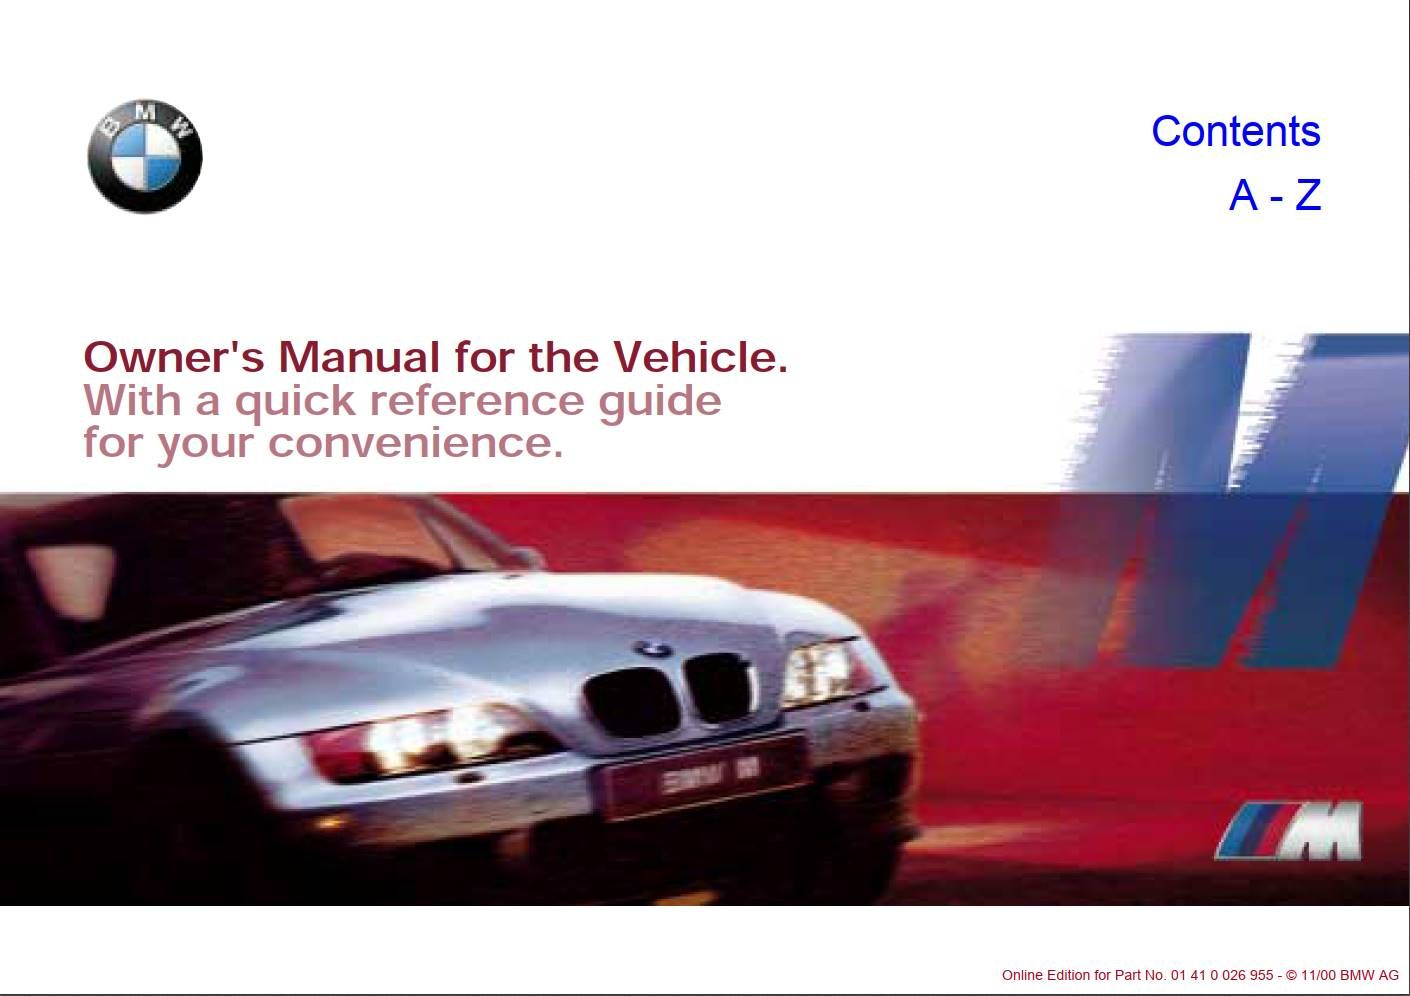 Bmw M Roadster Coupe 2001 Owner S Manual Has Been Published On Procarmanuals Com Https Procarmanuals Com Bmw M Roadster Coupe 20 In 2020 Owners Manuals Roadsters Bmw